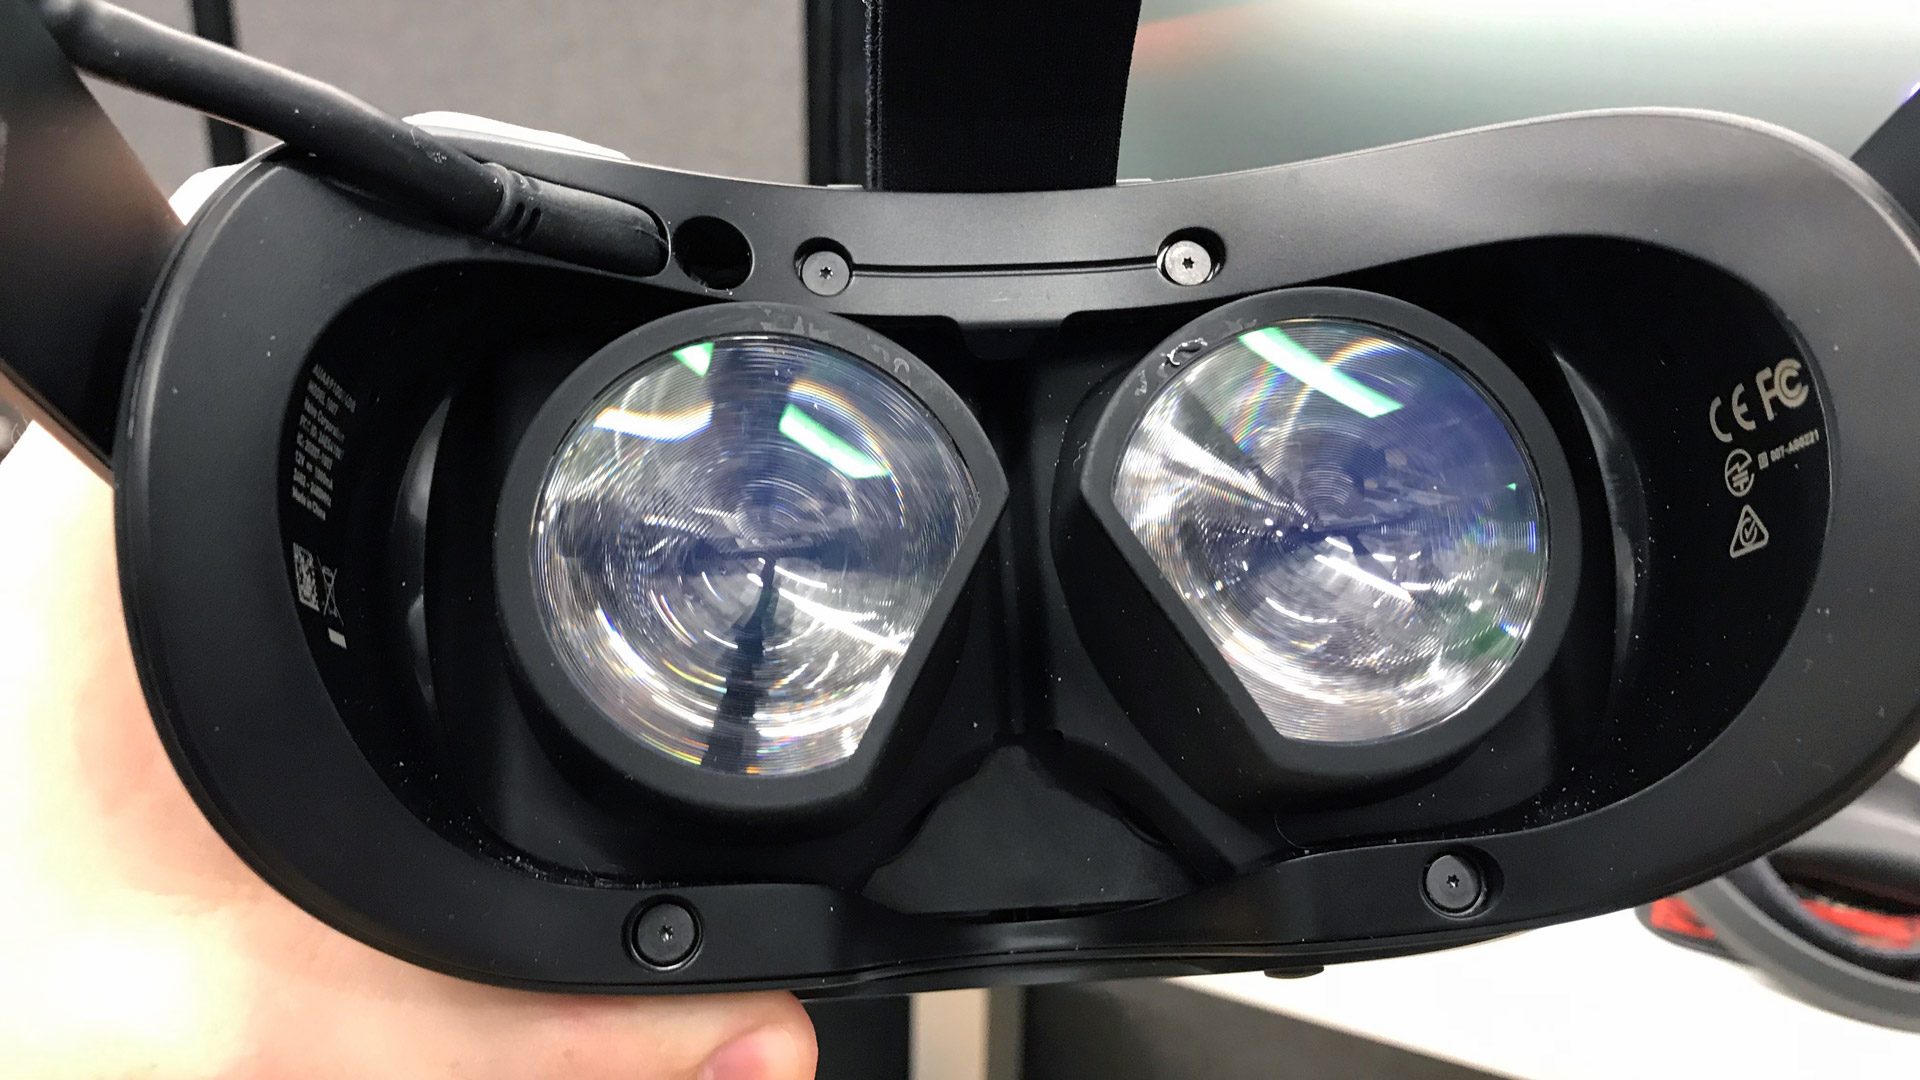 Valve Index VR Headset Sets an Impressive New Bar for VR